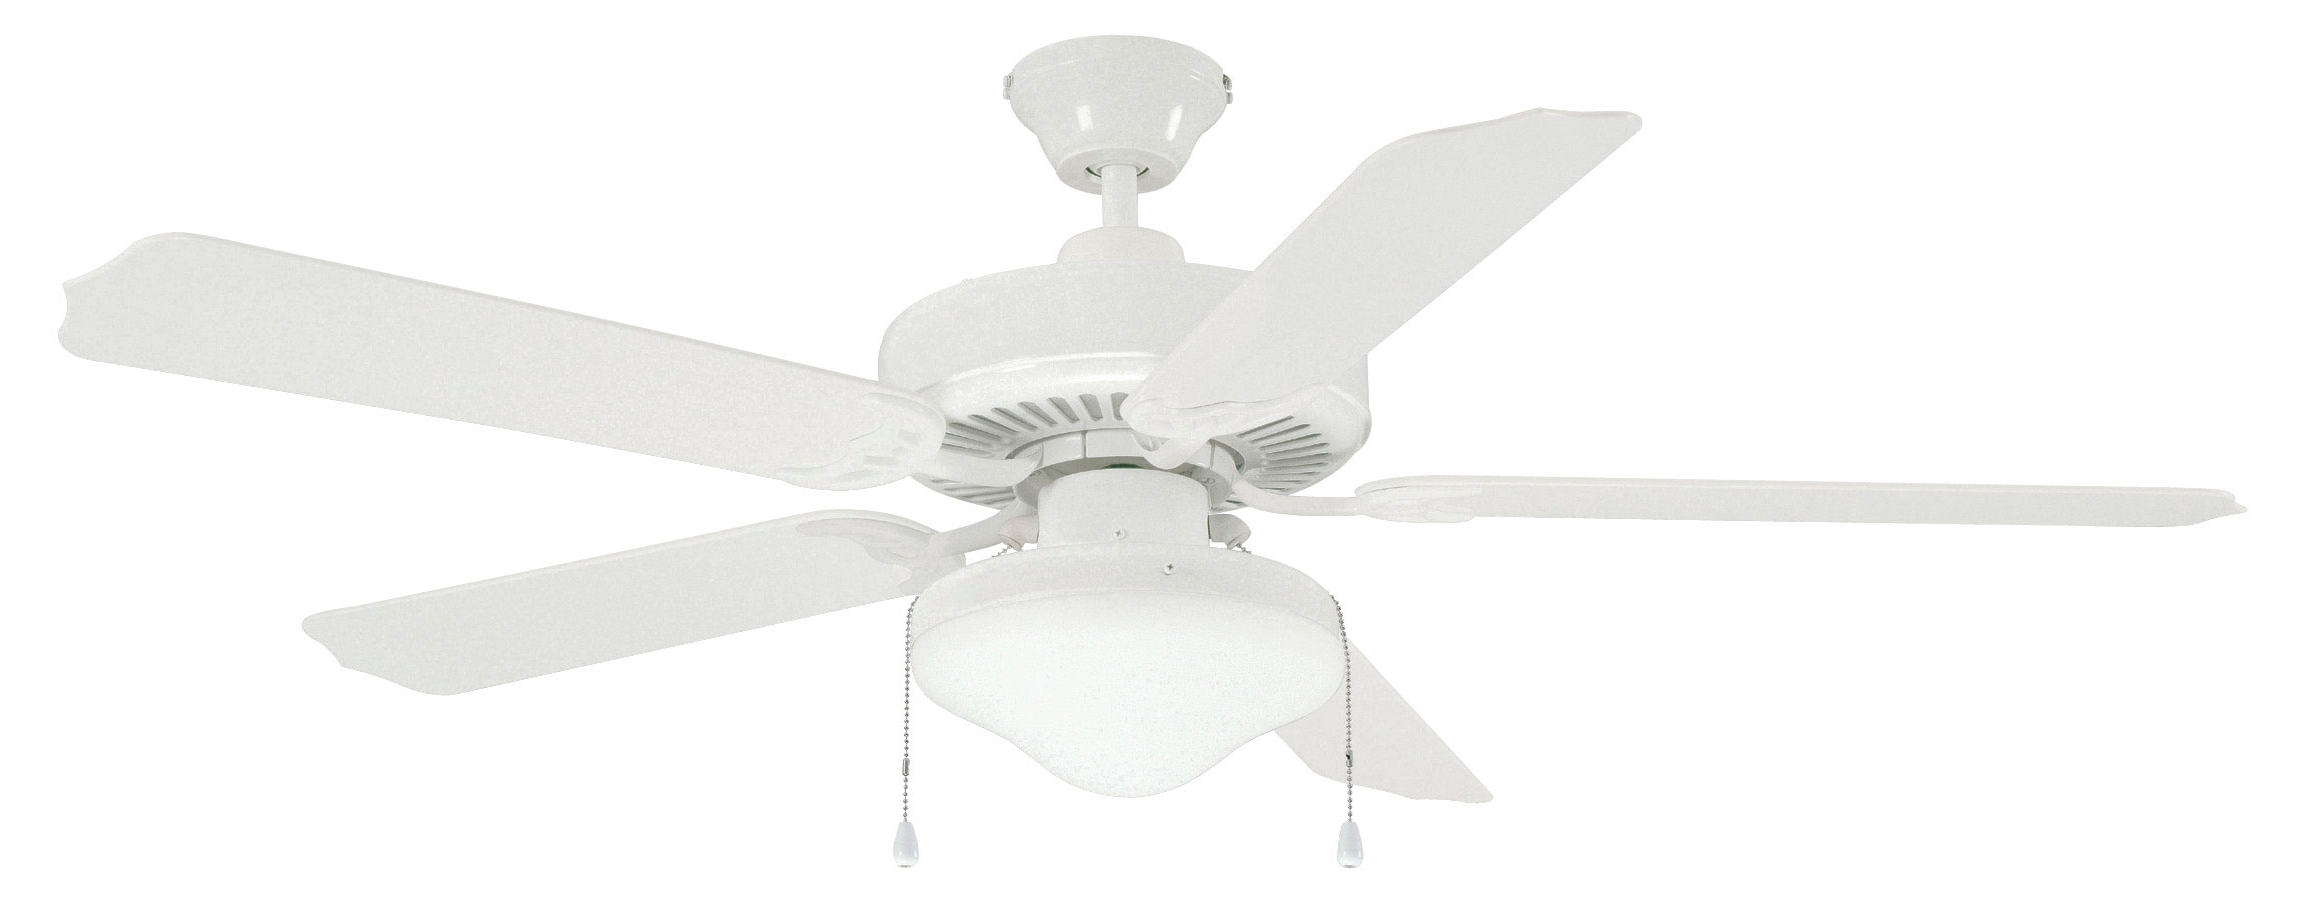 Favorite White Outdoor Ceiling Fans With Lights For Ceiling Fans White Ceiling Fan With Light Cruise Outdoor Wet Rated (Gallery 6 of 20)